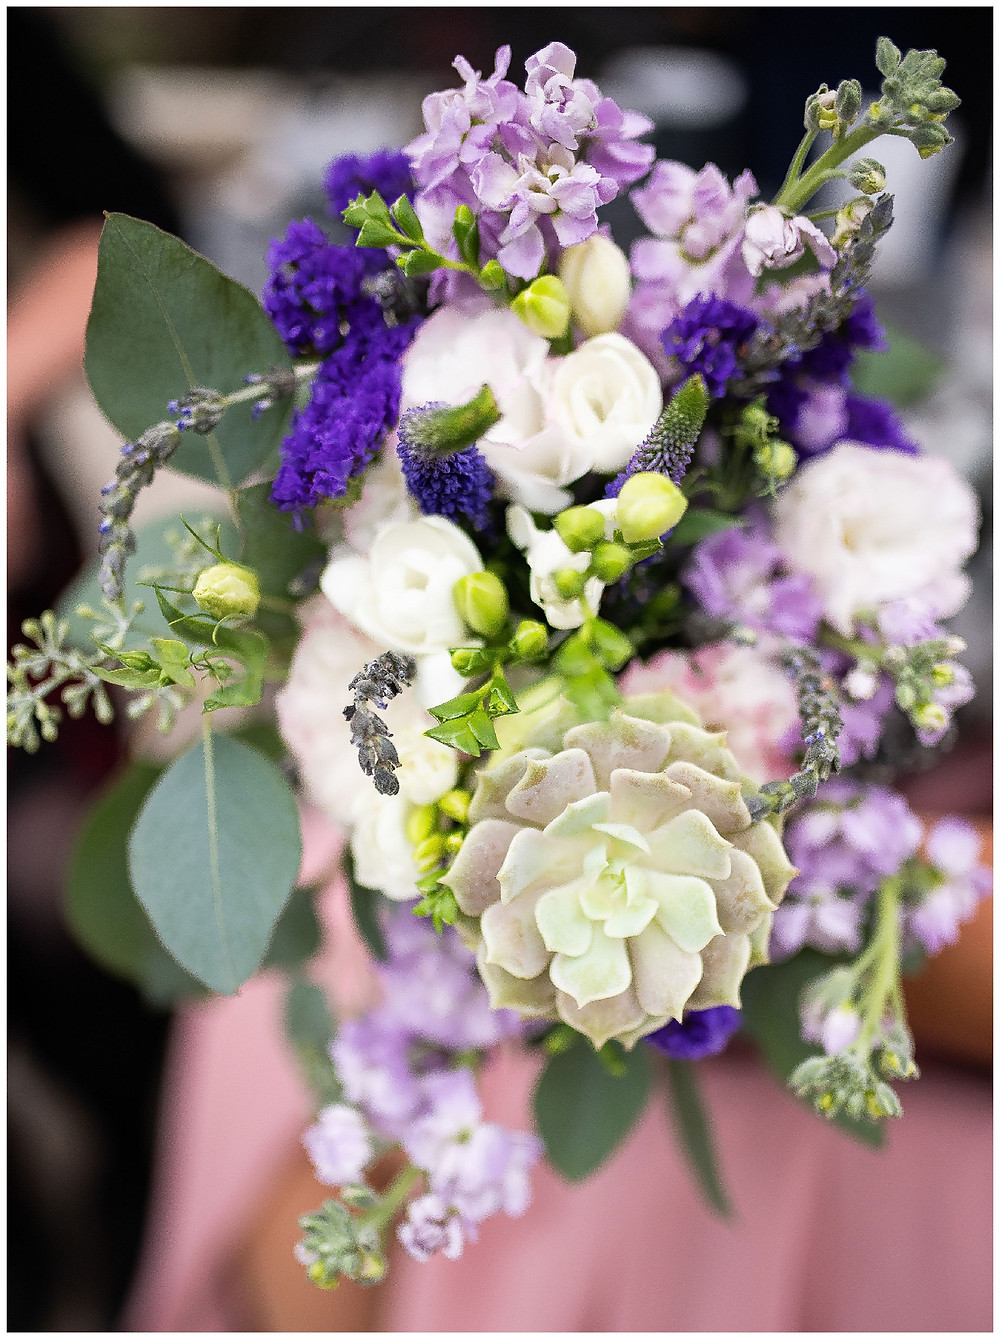 purple bridal bouquet of snap dragons and succulents for a wedding near cleveland Ohio